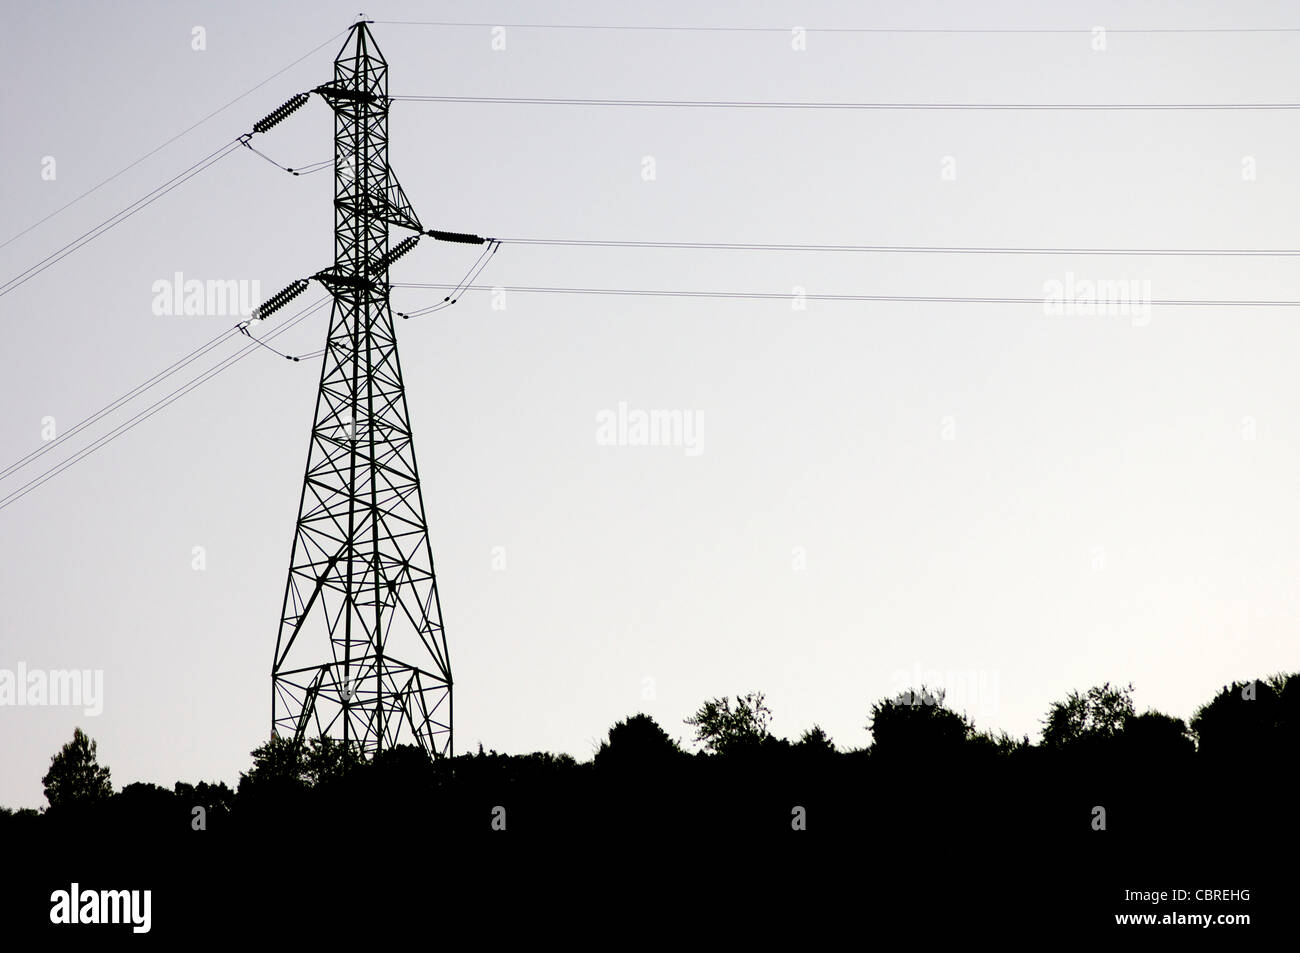 High Tension Tower Stock Photos & High Tension Tower Stock Images ...